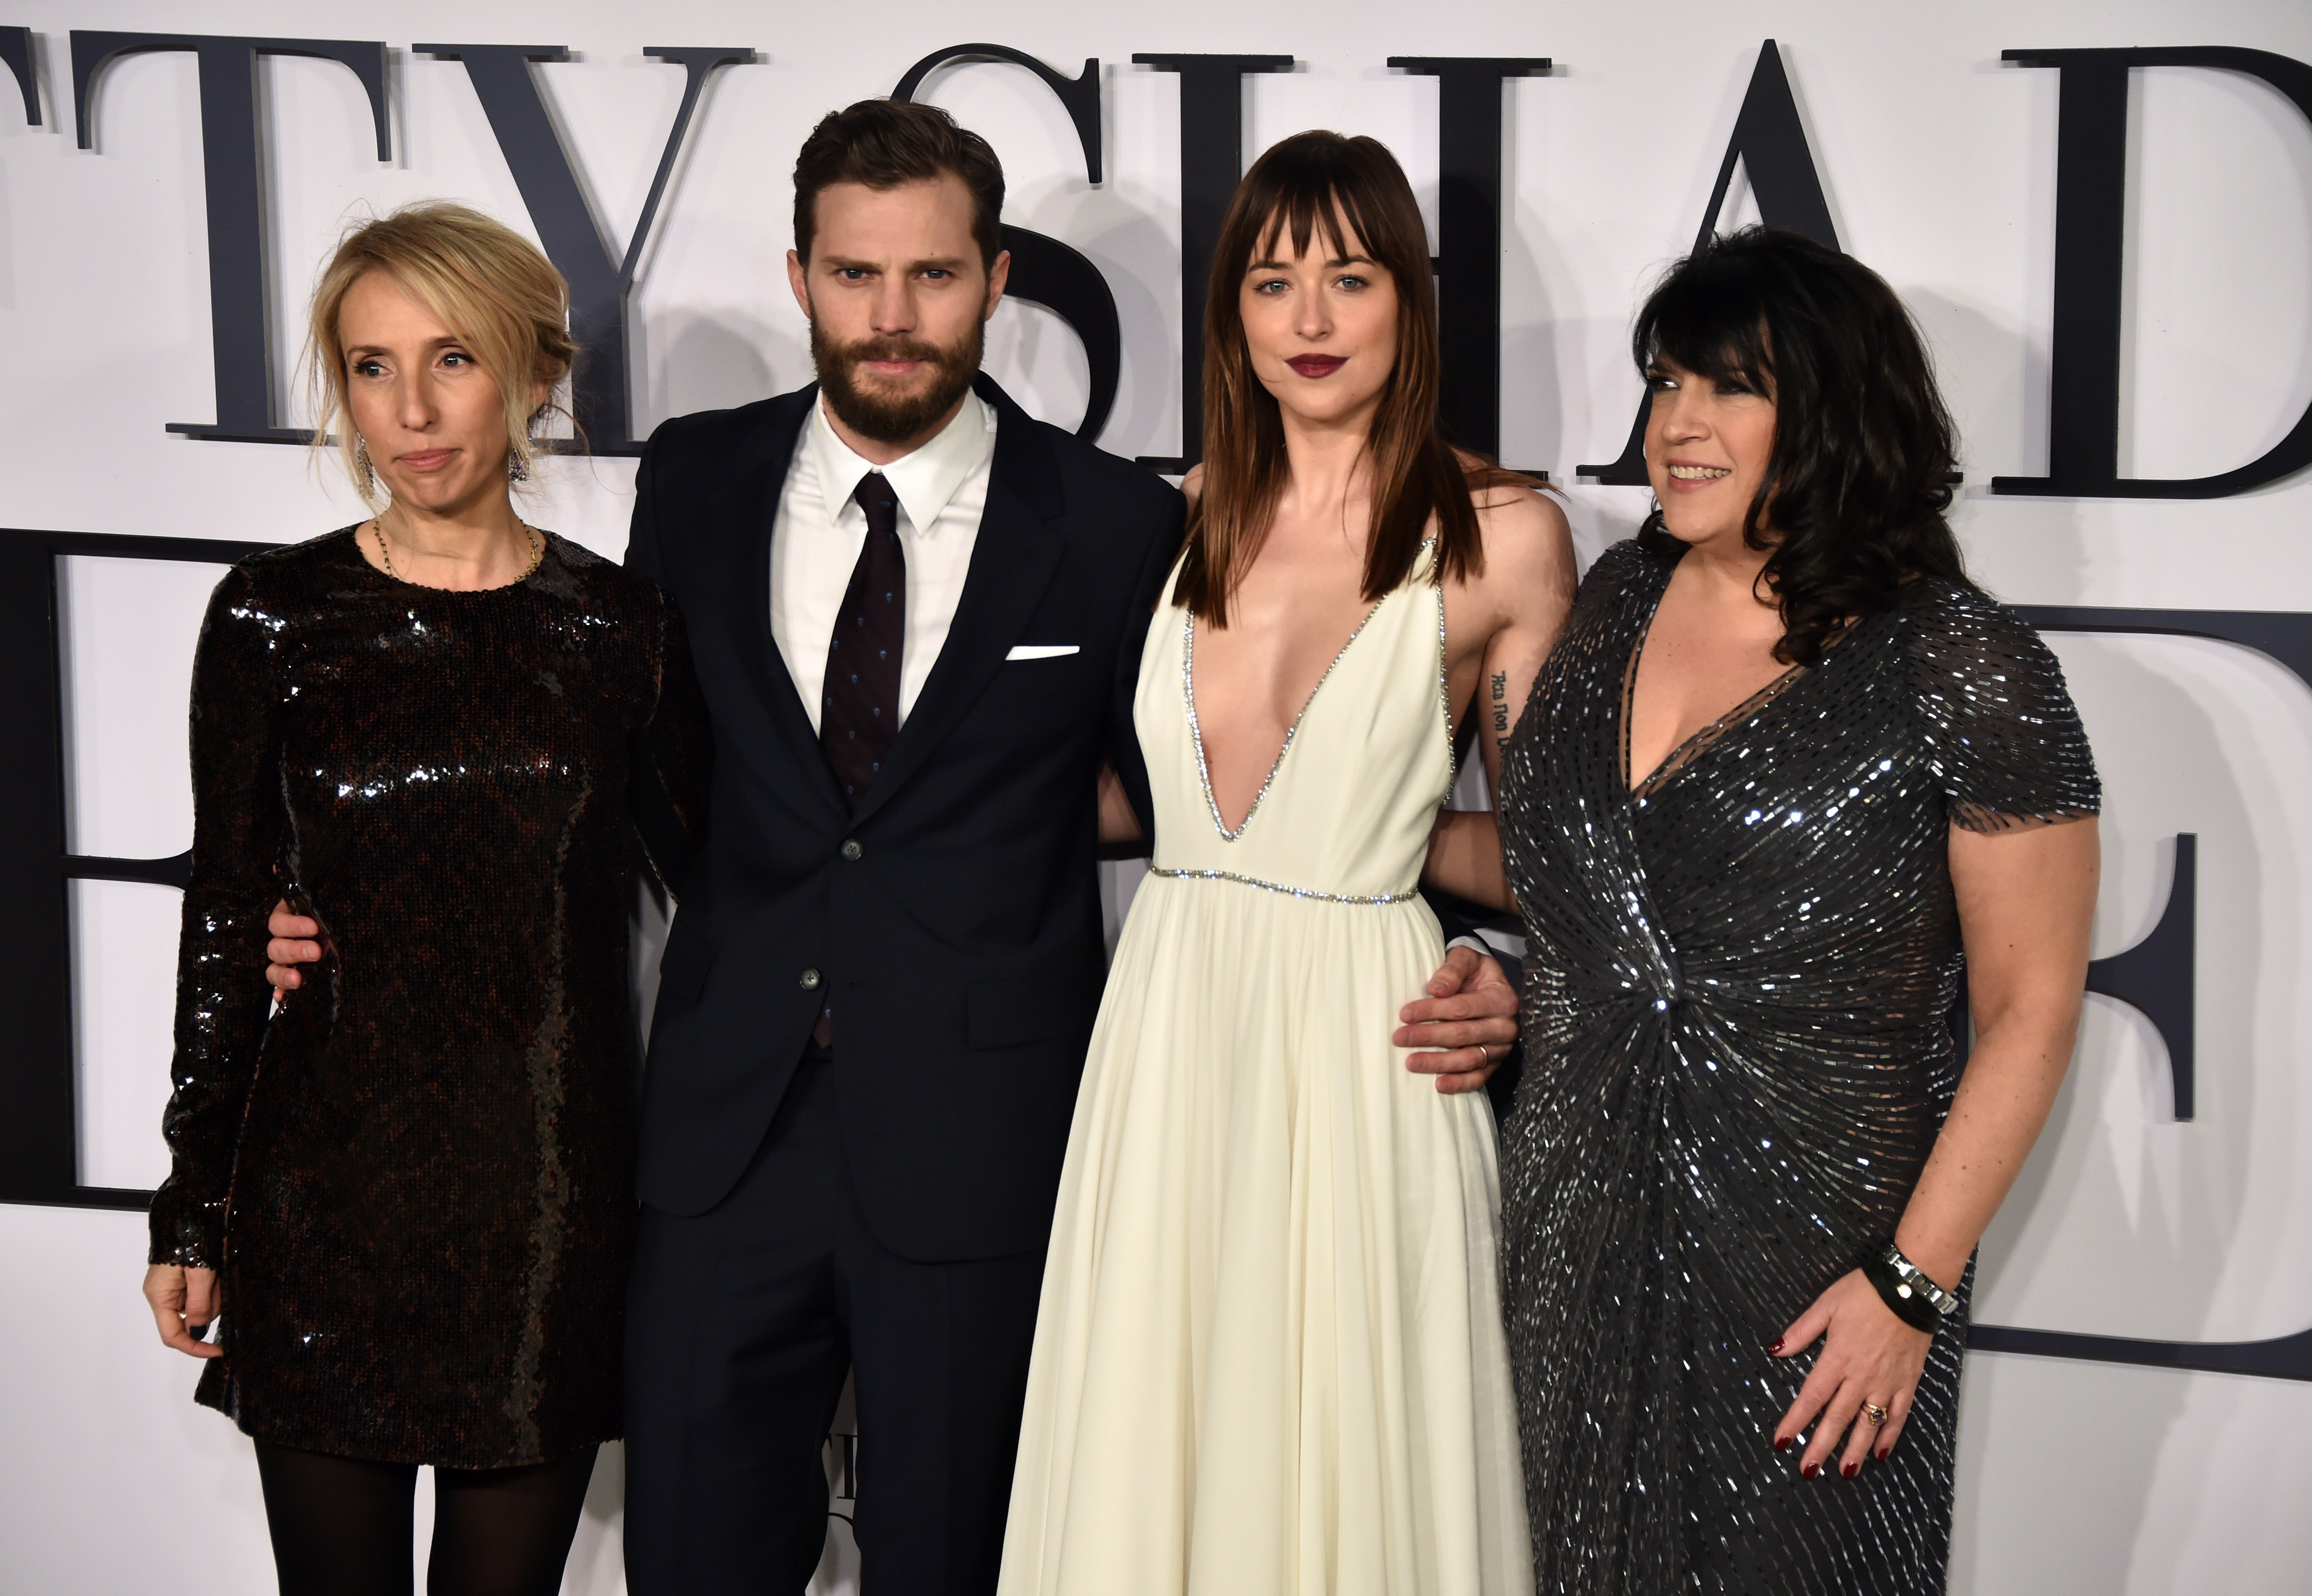 Sam Taylor-Johnson will not work on sequels 50 shades of gray 03/27/2015 29